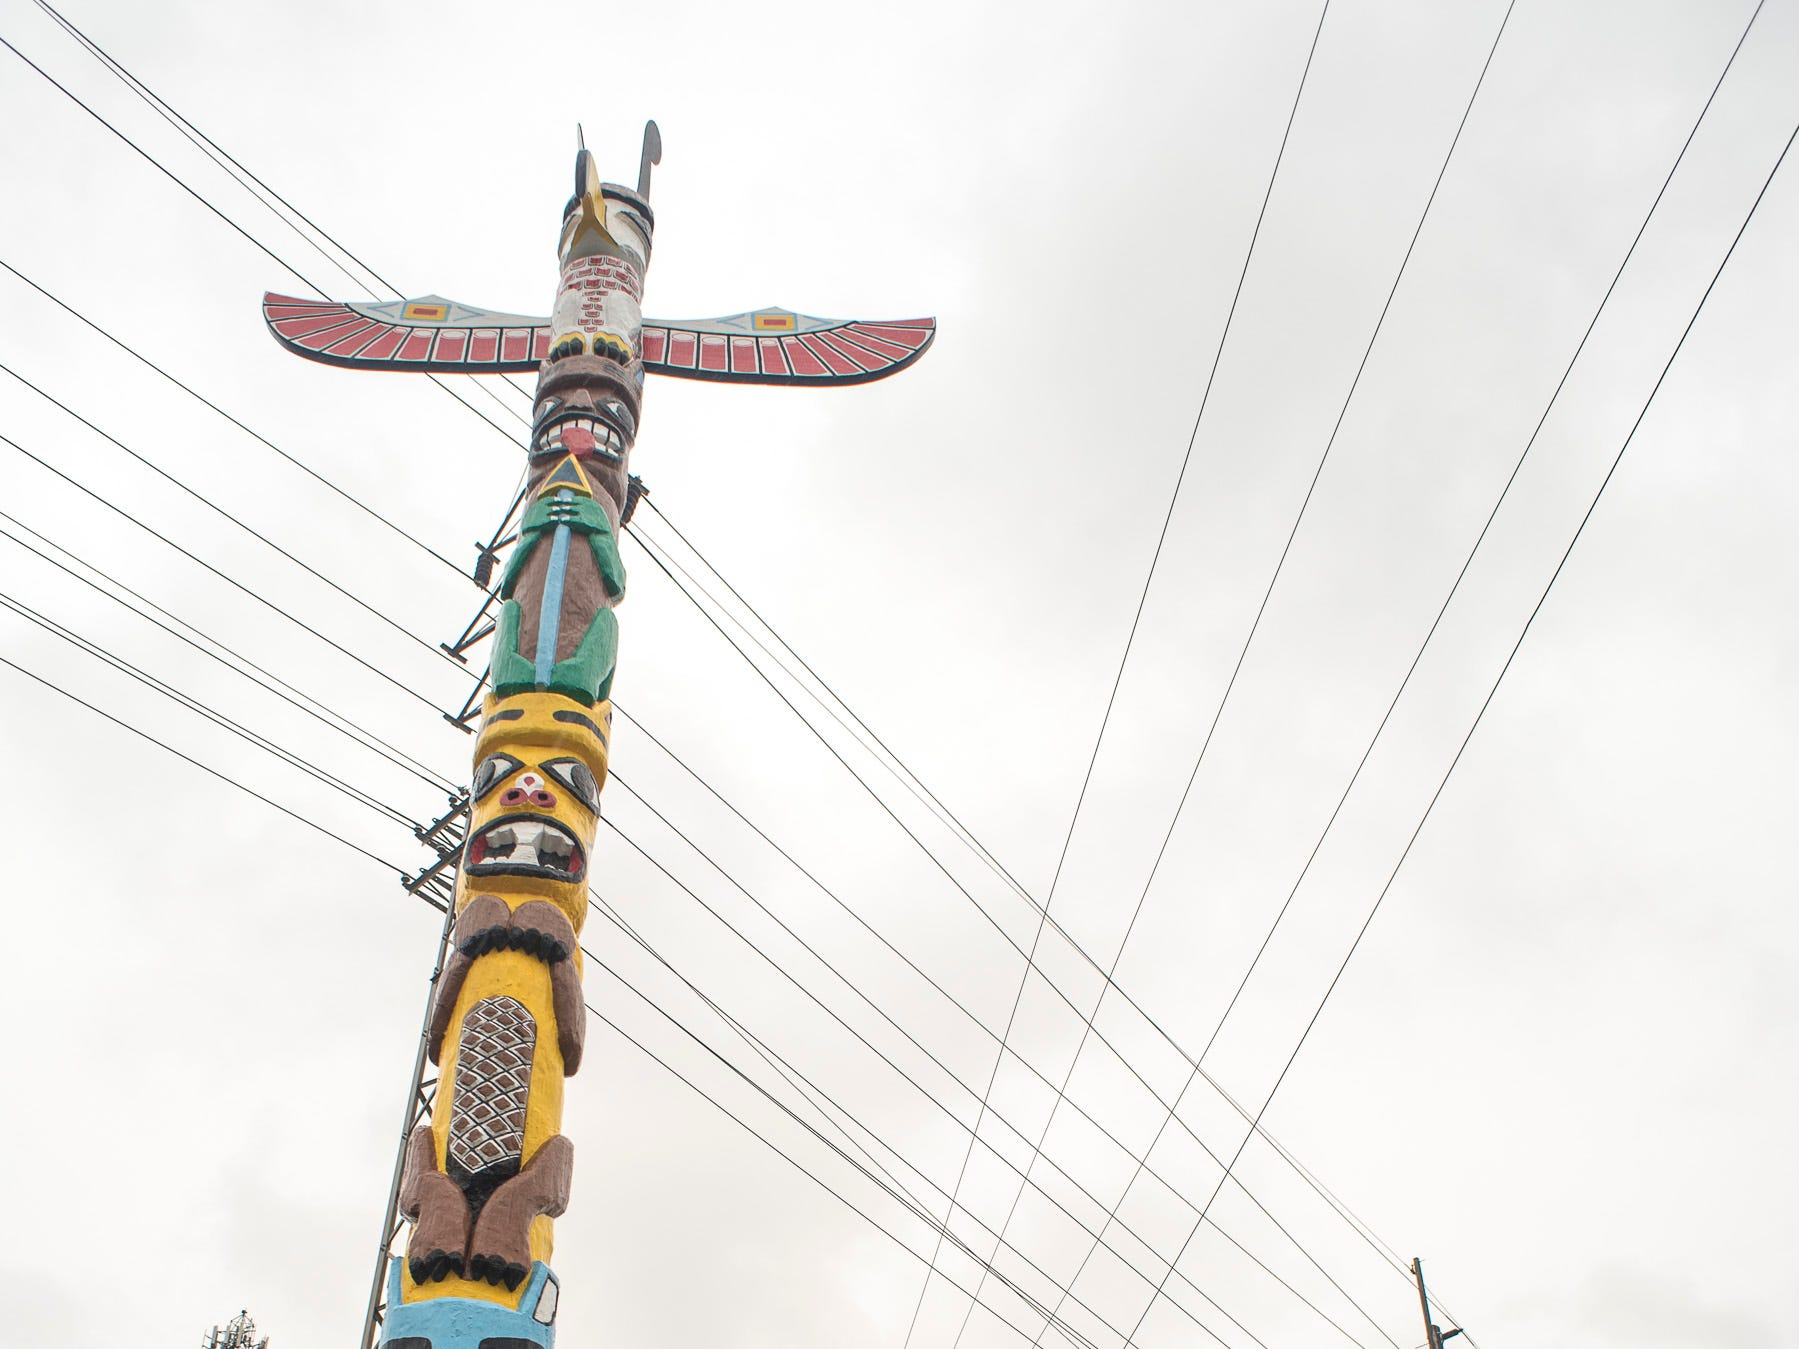 A ceremony was held Saturday to unveil the newly restored totem pole placed near Truck One in Newark, Ohio. The totem pole, restored by Dave Fryman, was originally erected after the great flood of 1959.